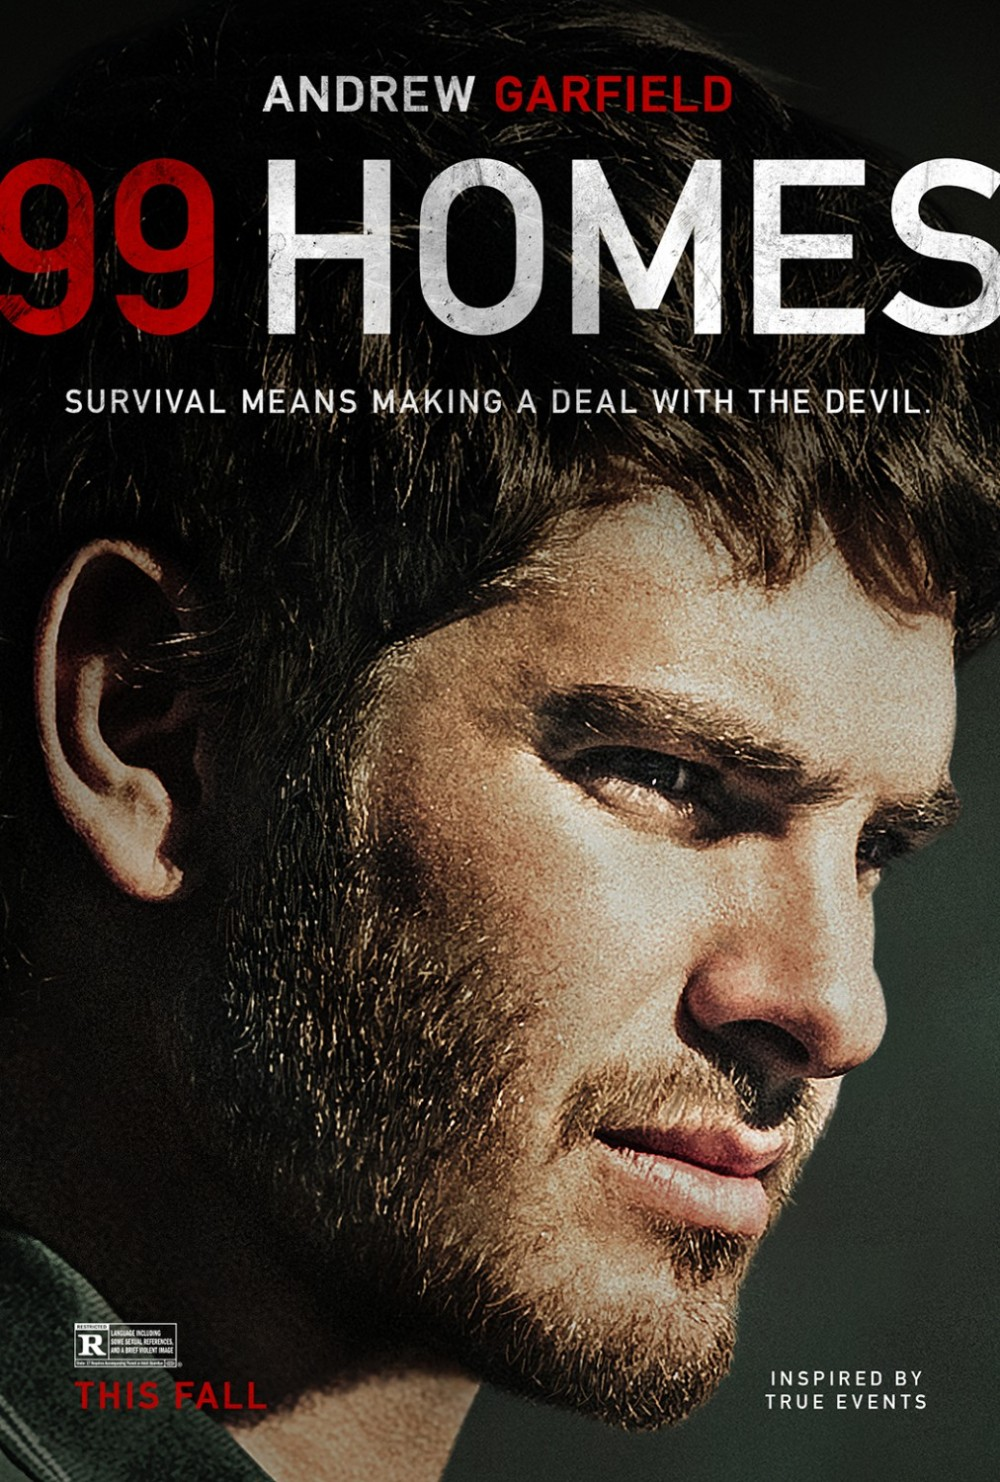 99-homes-andrew-garfield-poster